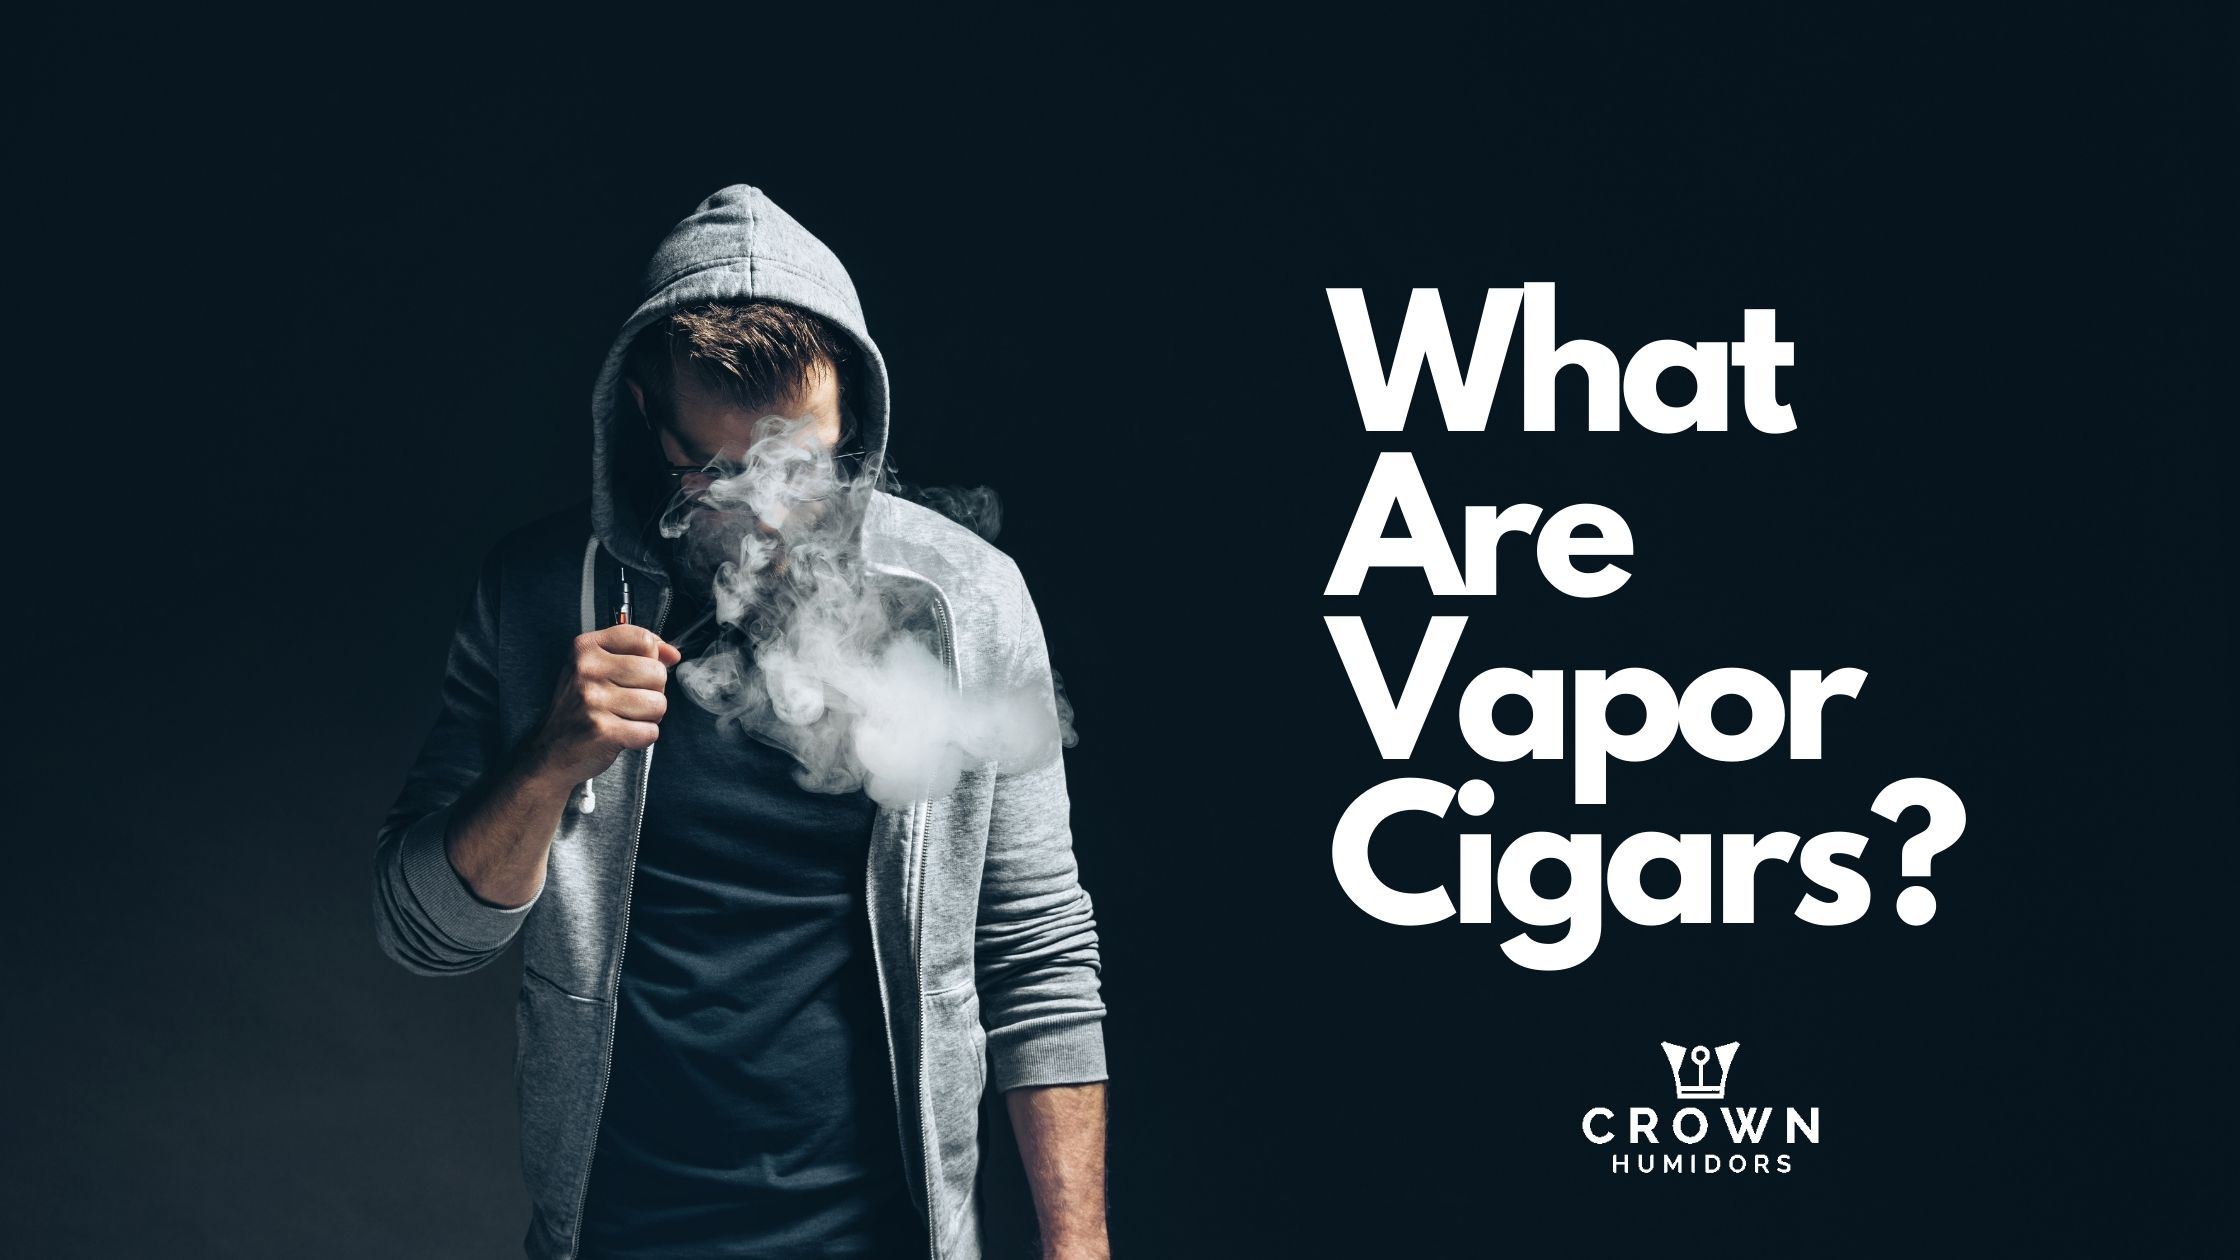 WHAT ARE VAPOR CIGARS?